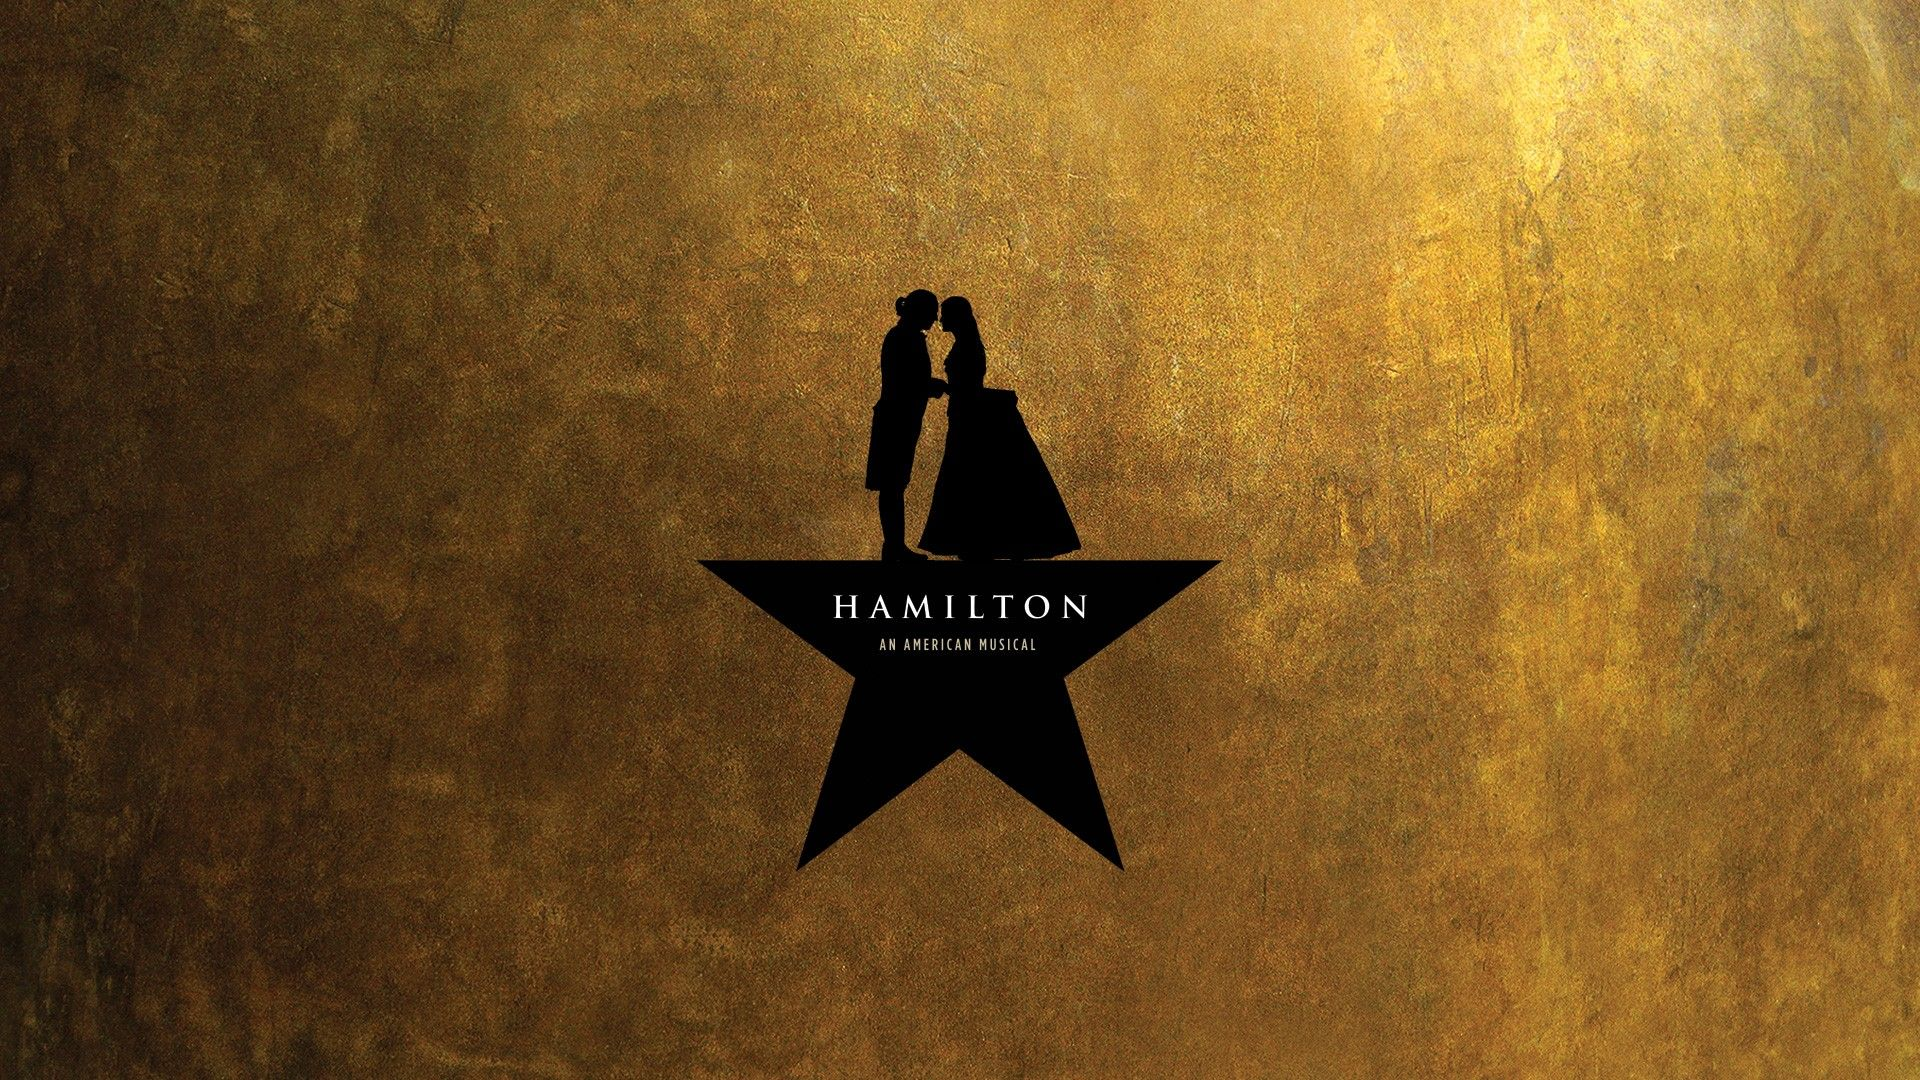 Image Result For Hamilton Laptop Wallpaper Hamilton Wallpaper Laptop Wallpaper Wallpaper